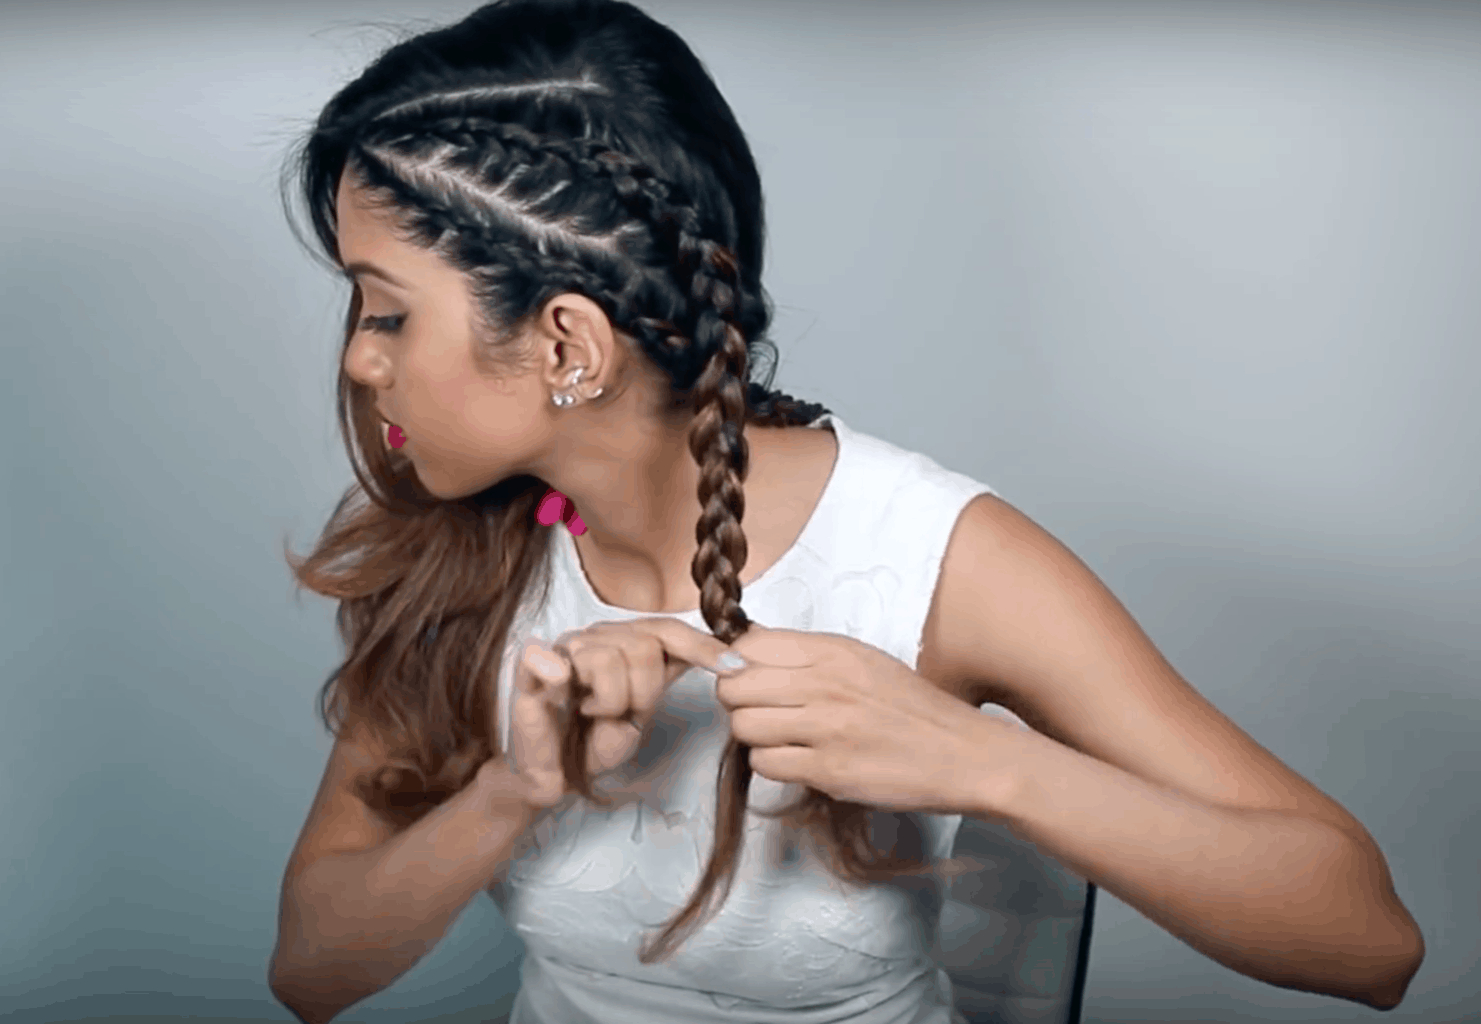 Edgy Style 101: 3 Best Hairstyles For Edgy Girls – College For Well Liked Faux Undercut Braid Hairstyles (View 7 of 20)